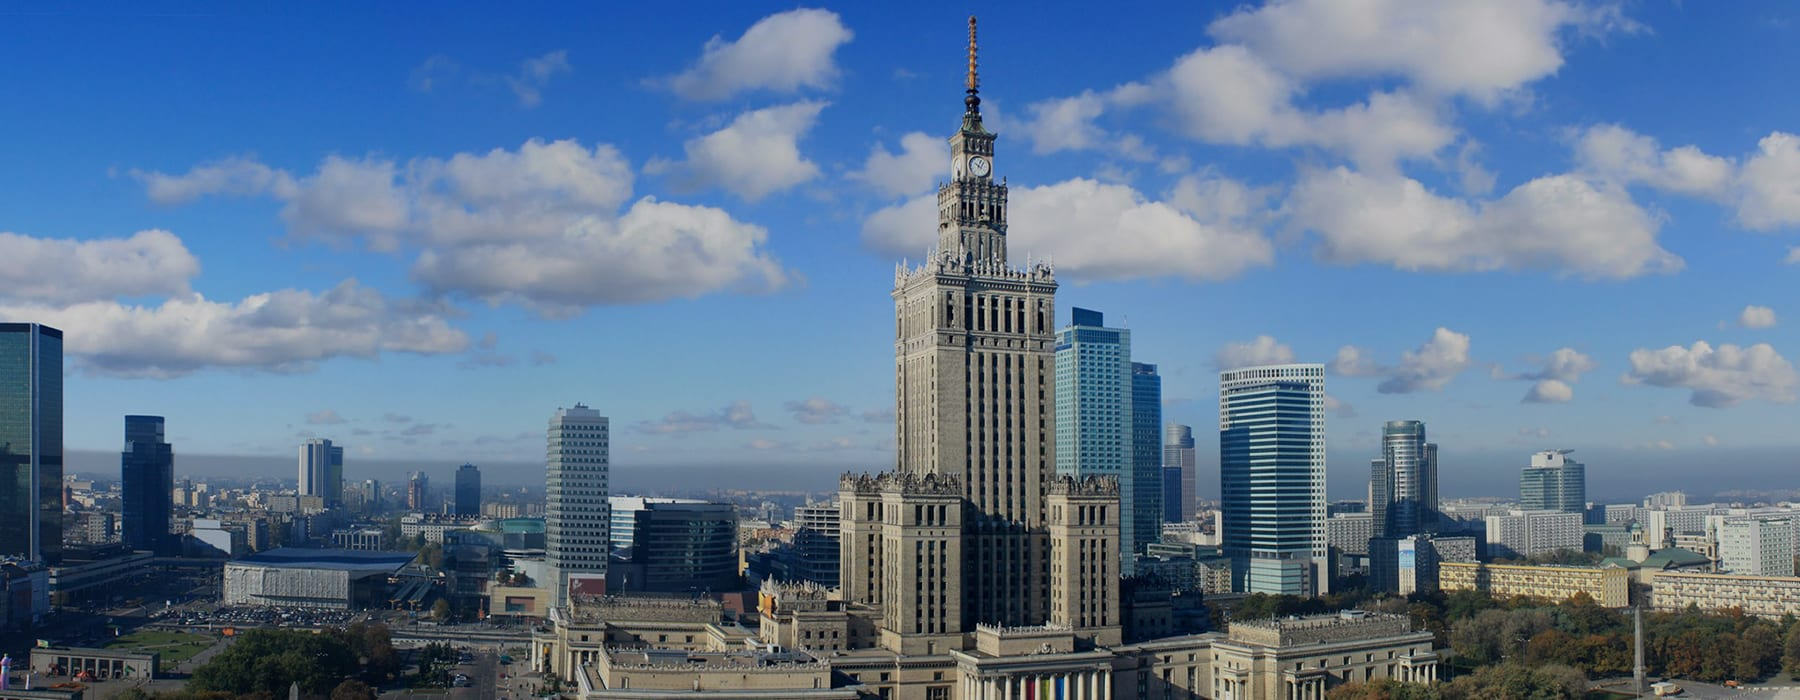 Skyline of Warsaw Downtown